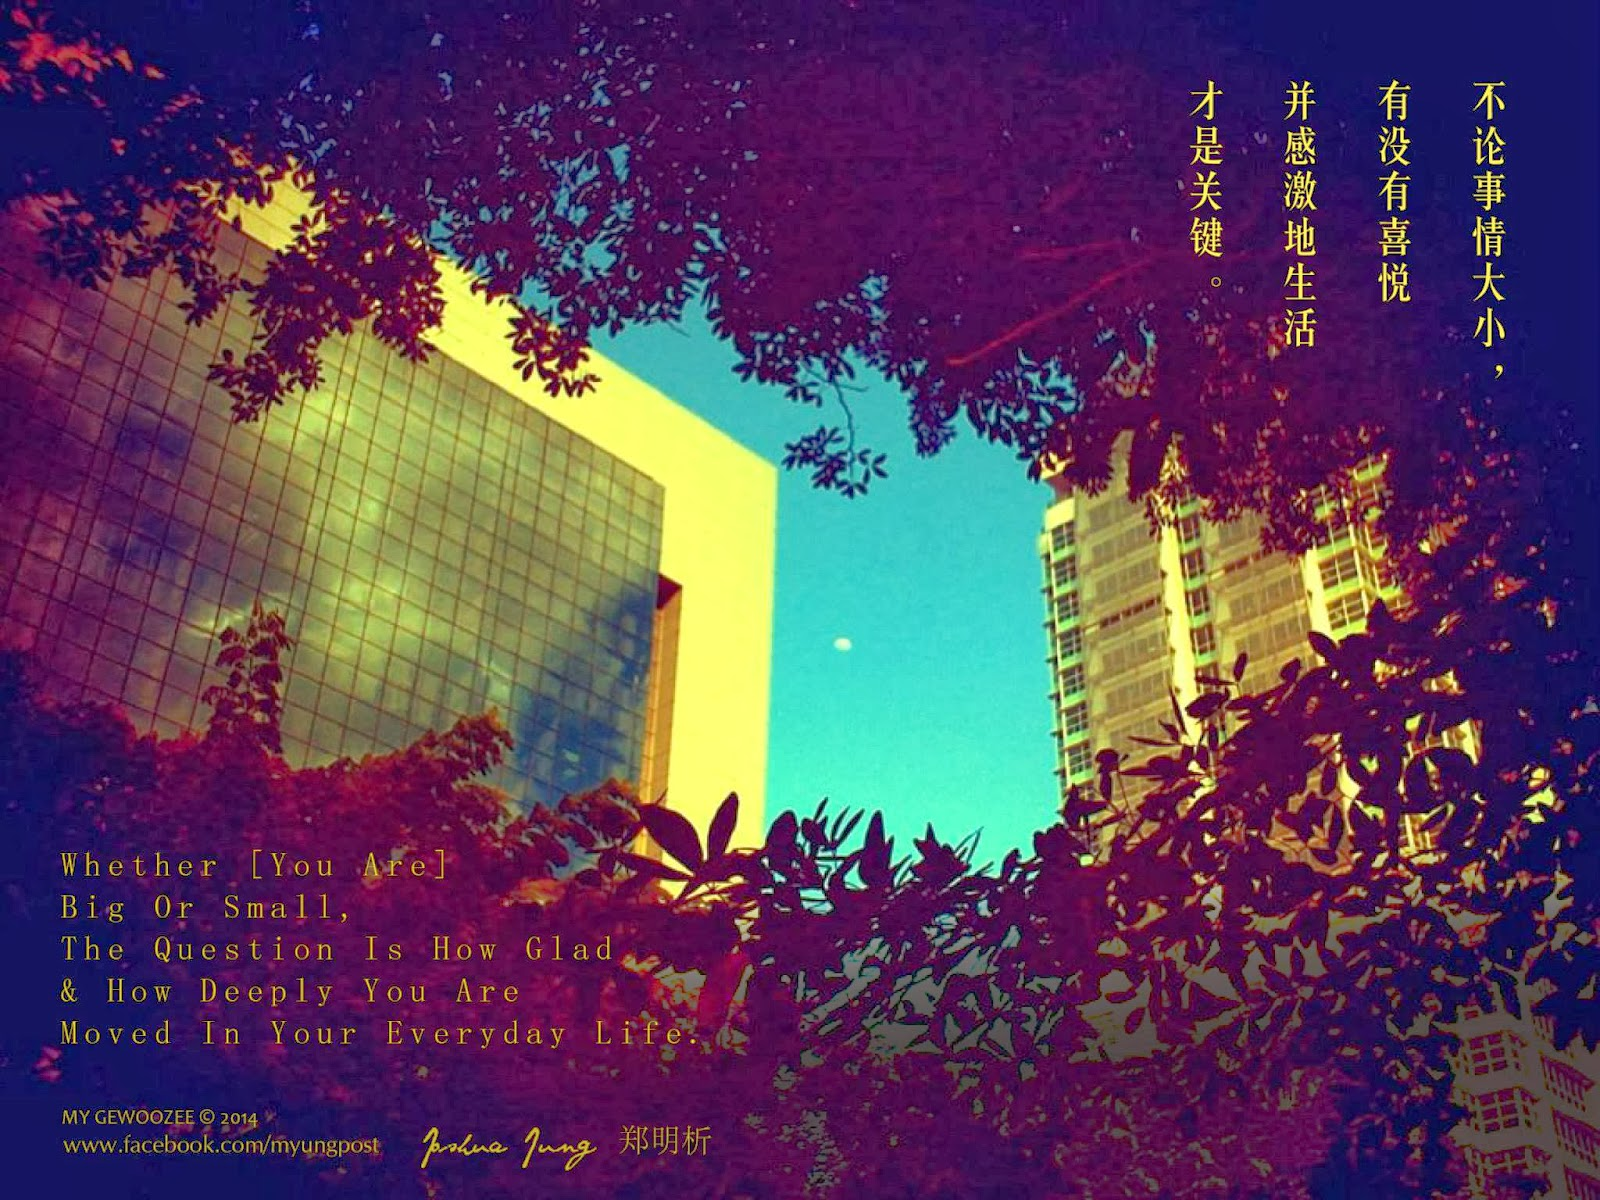 郑明析, Joshua Jung, Providence, Proverb, Inspiration, Religion, Faith, KL Town, Moon, Buildings